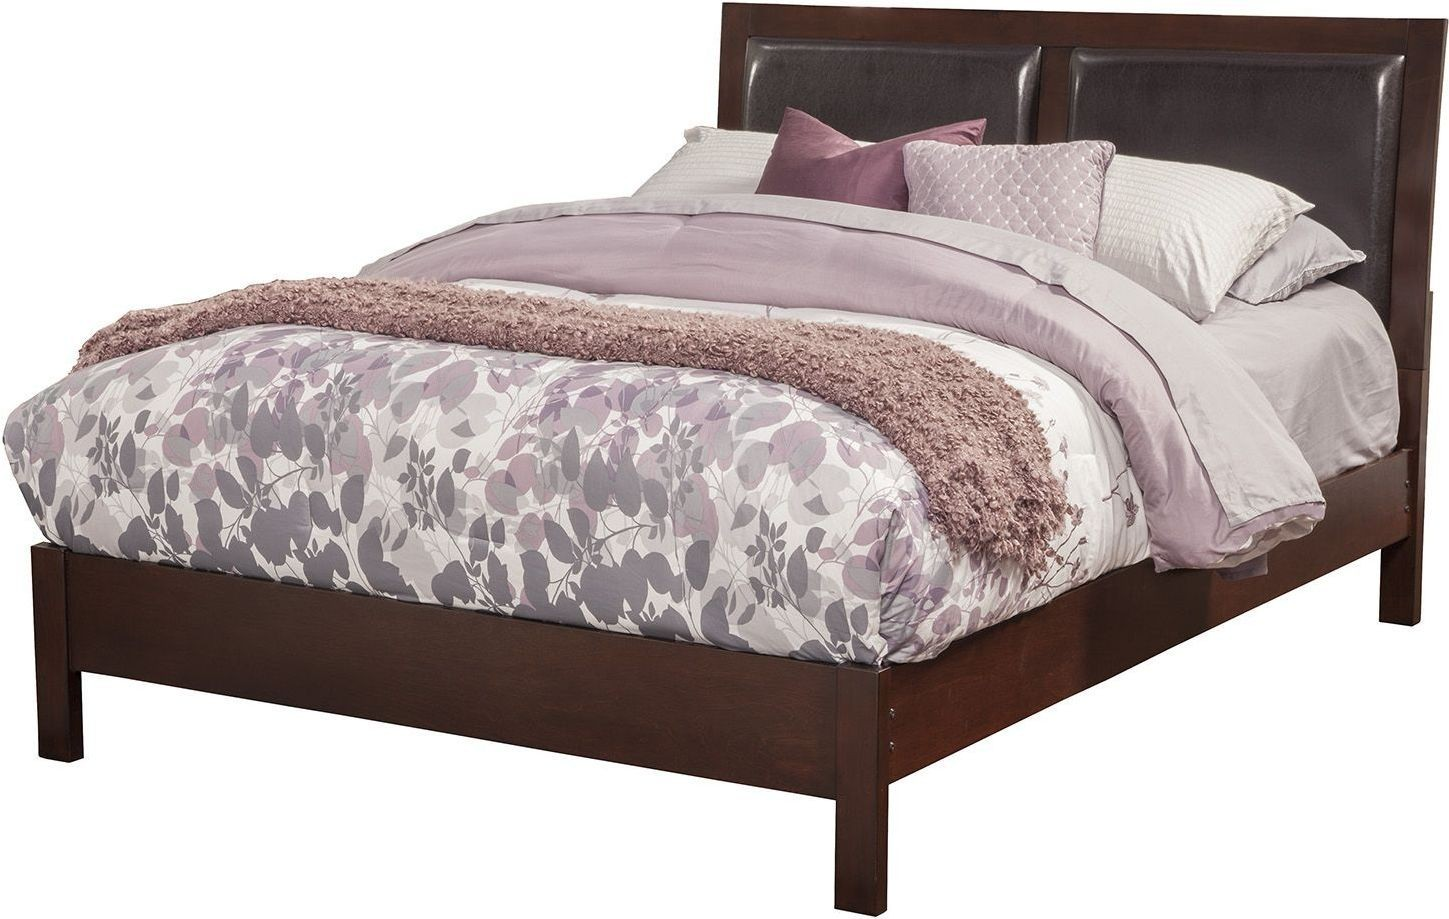 Costa Mesa Cherry King Platform Bed From Alpine